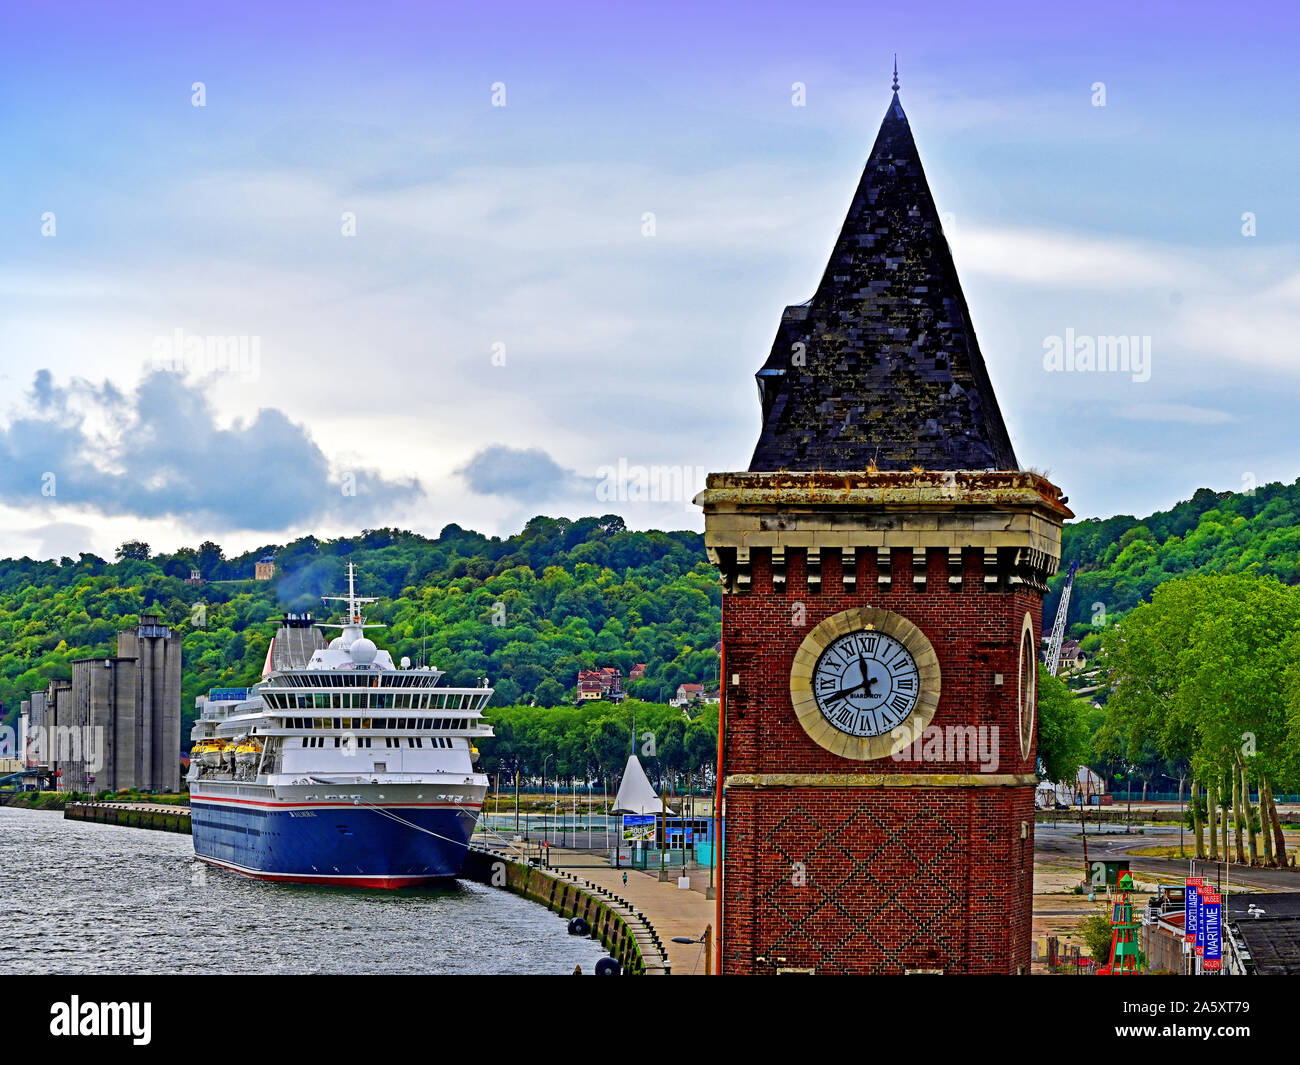 Rouen Normandy August 13 2019 Fred Olsen cruise ship Balmoral on the quayside Stock Photo